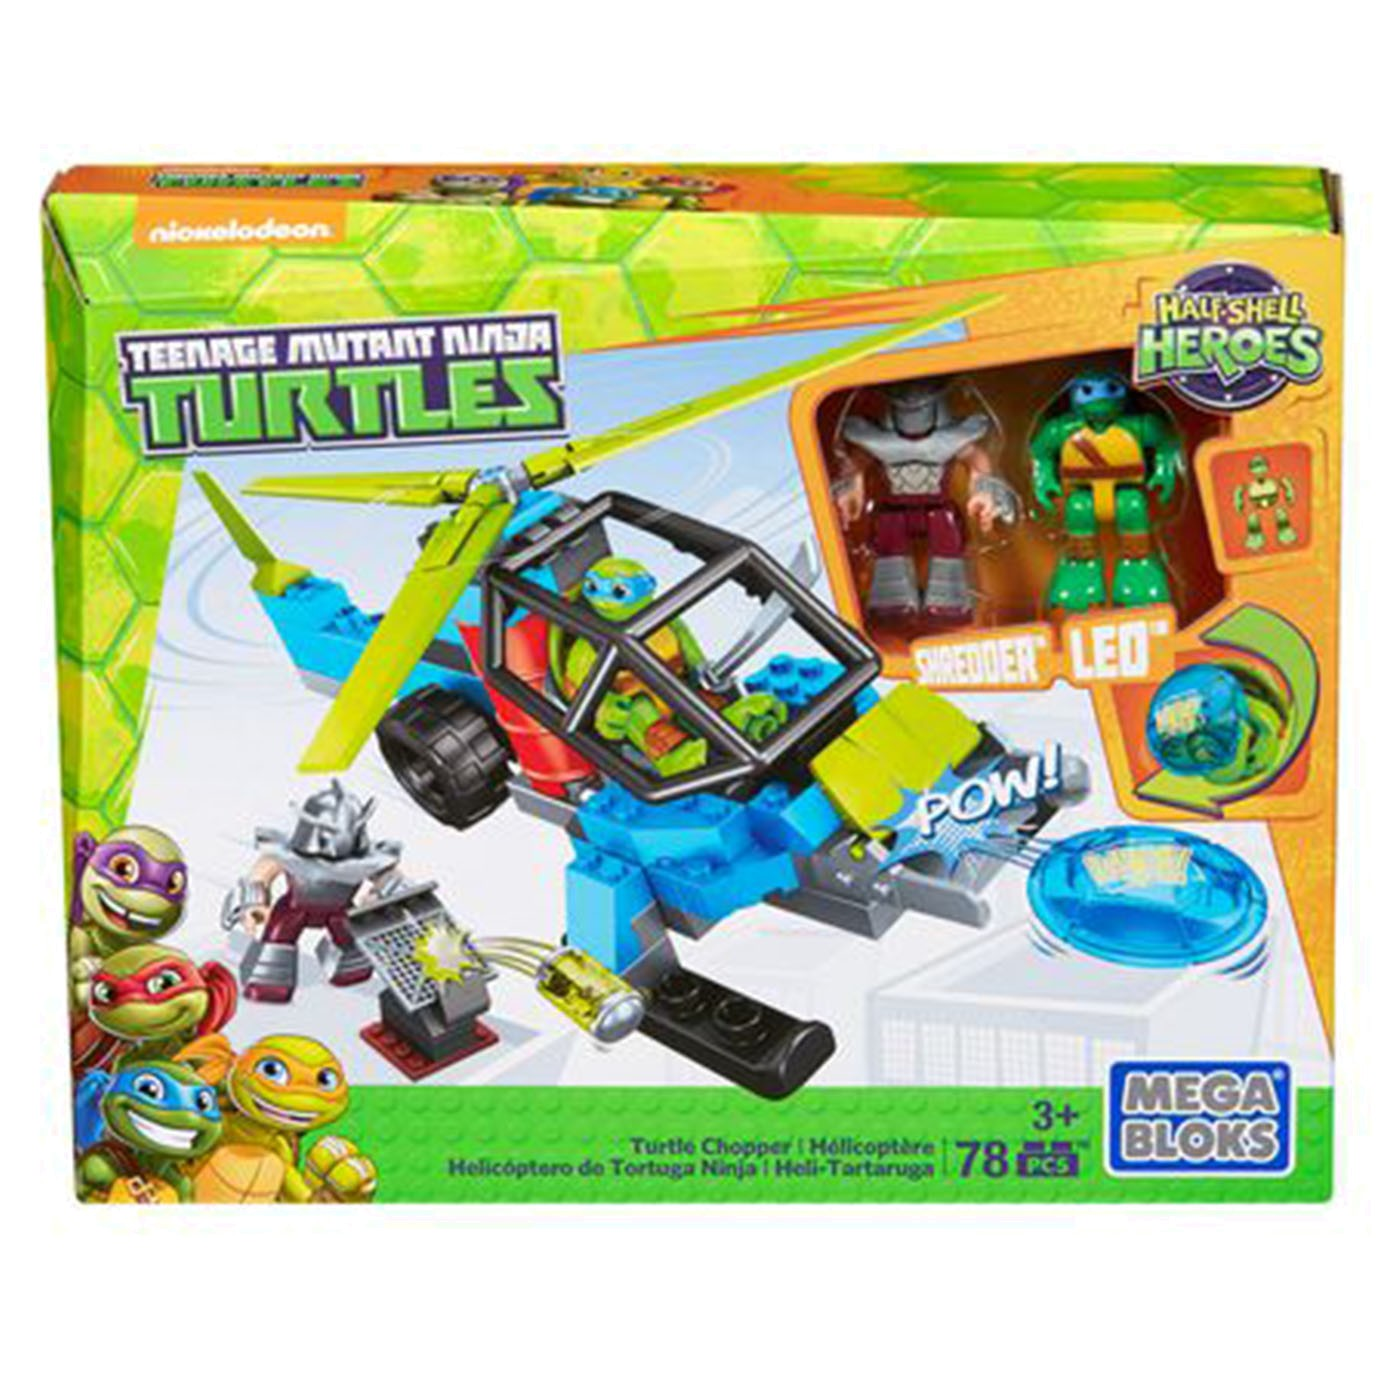 TMNT TURTLE CHOPPER